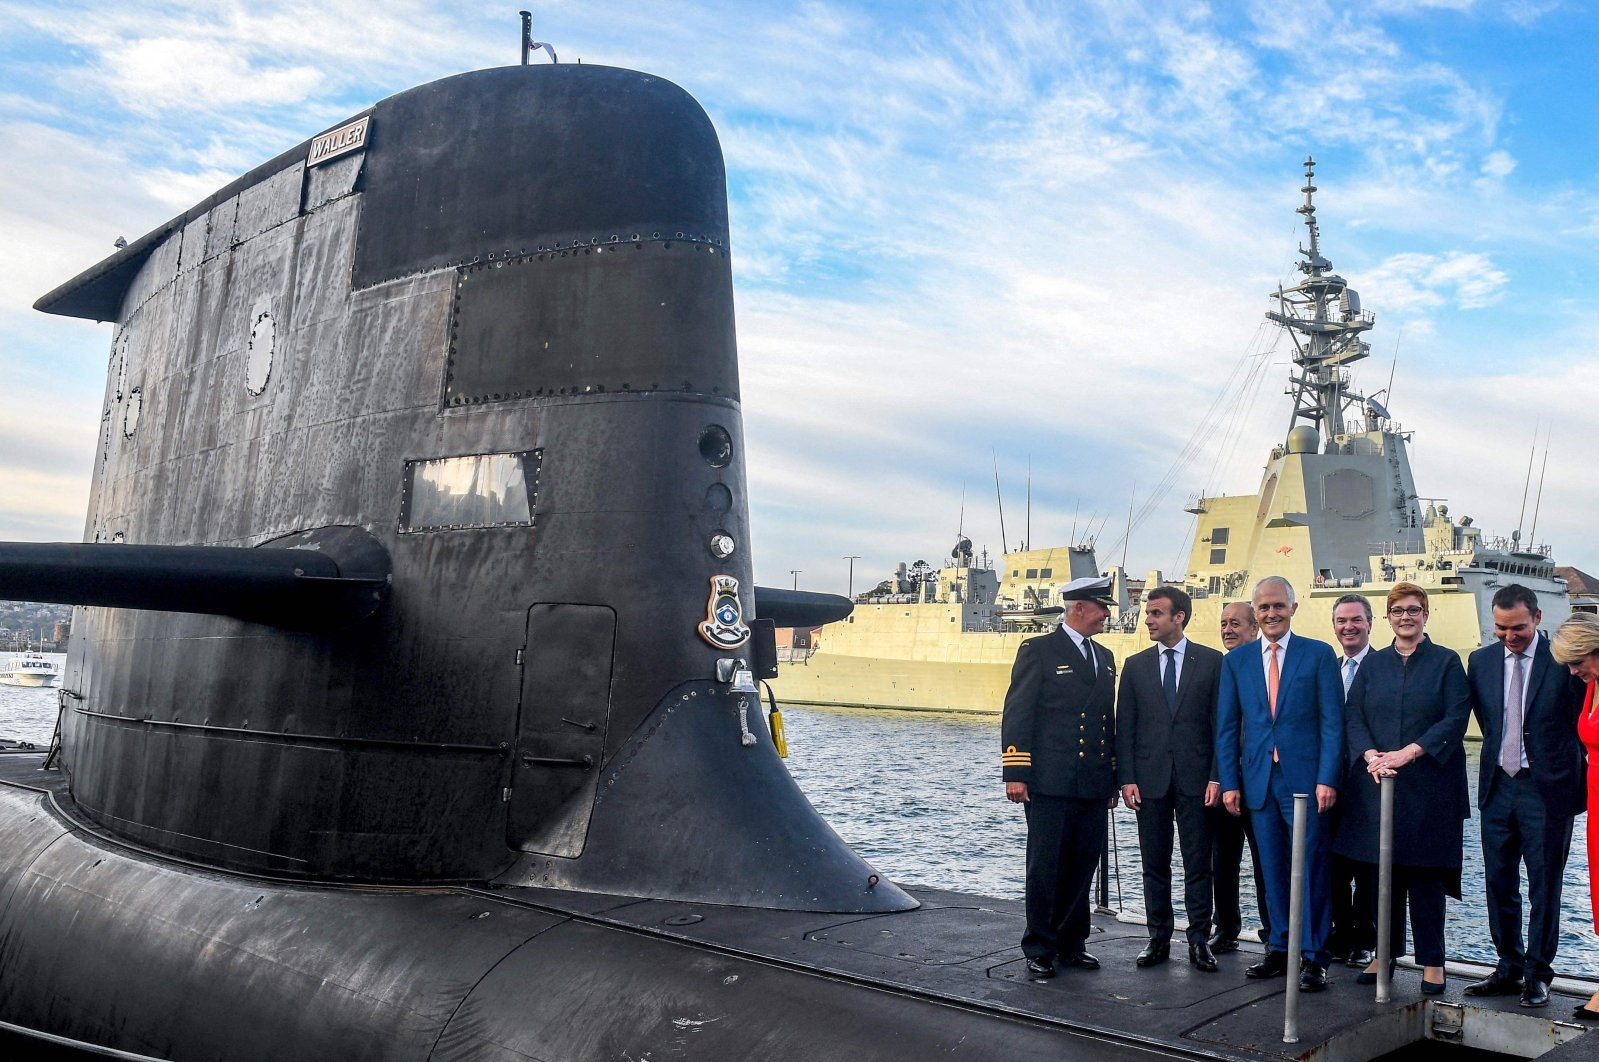 French President Emmanuel Macron (2nd L) and Australian Prime Minister Malcolm Turnbull (C) standing on the deck of HMAS Waller, a Collins-class submarine operated by the Royal Australian Navy, at Garden Island in Sydney, Australia, May 2, 2018. (AFP Photo)